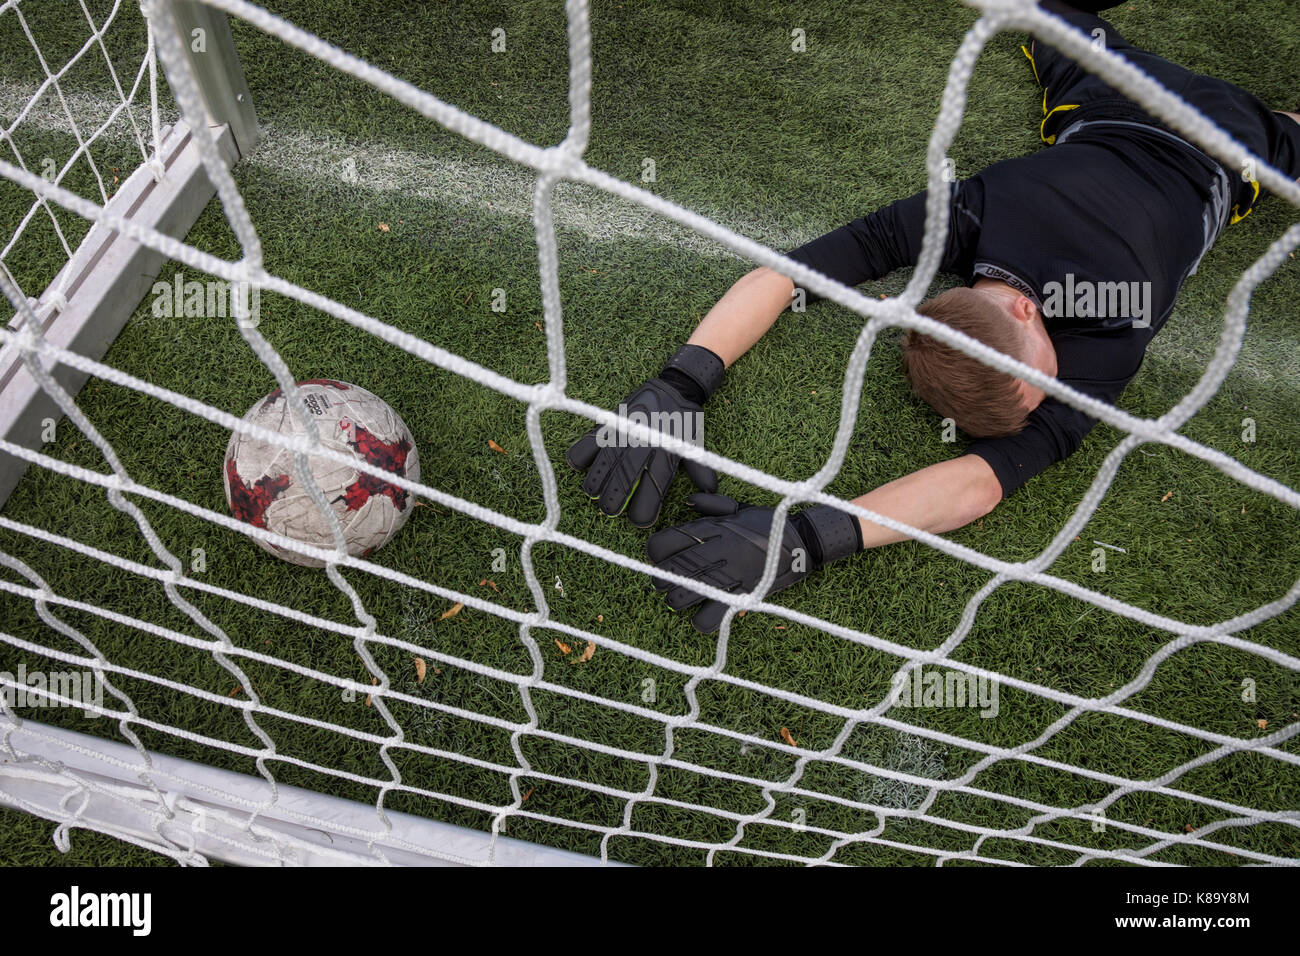 A goalkeeper of the amateur football team missed the ball 'KRASAVA' of 2018 FIFA World Cup on the football - Stock Image